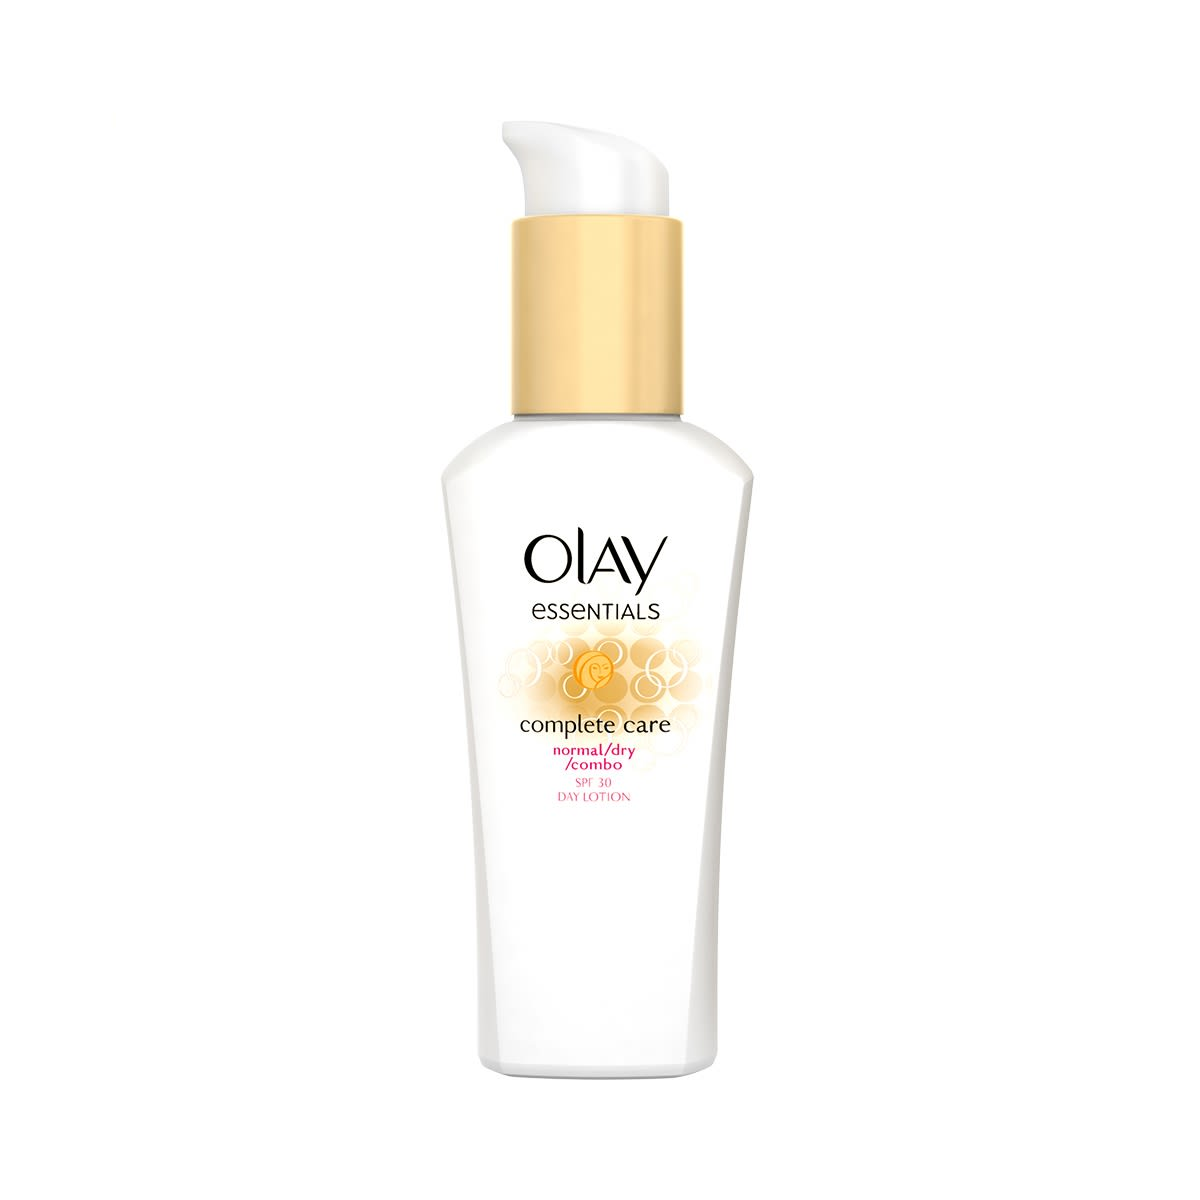 Olay Essentials Complete Moisturising Lotion SPF 30